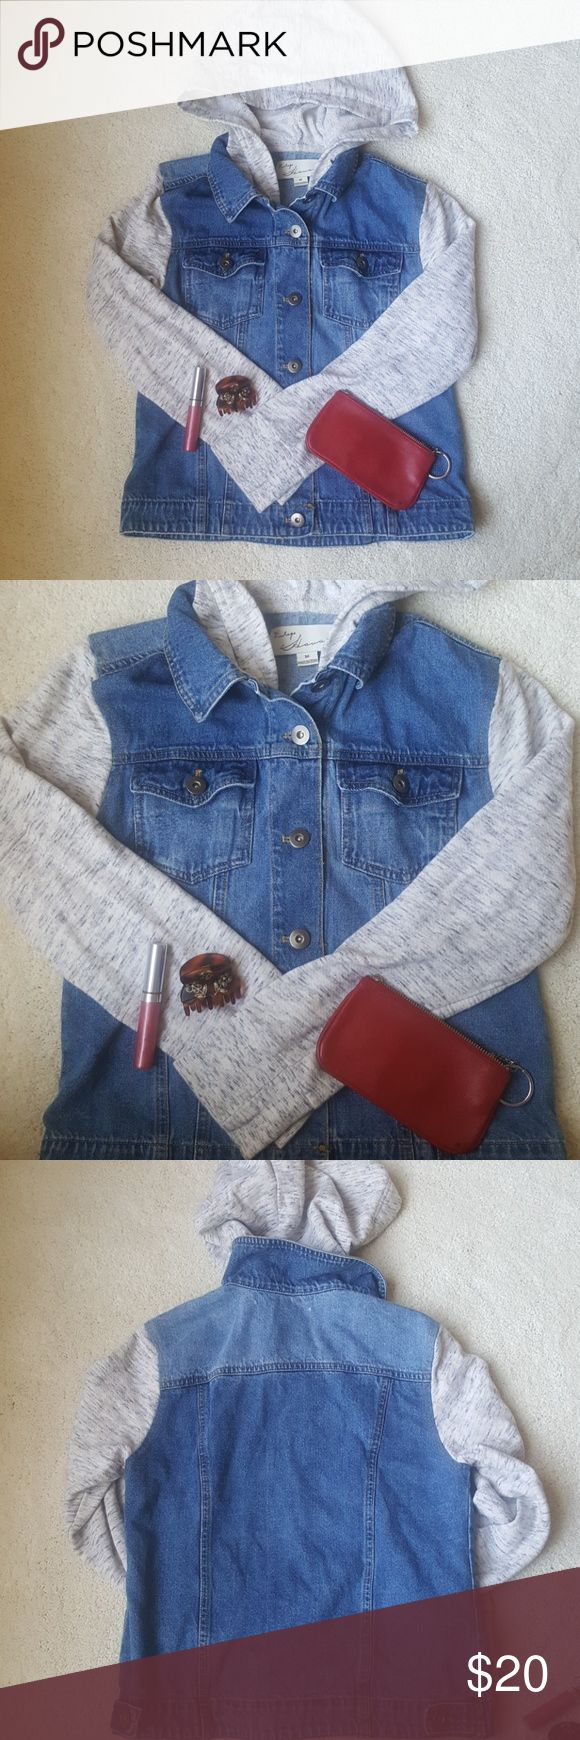 """hooded jean jacket comfy cool hooded jean jacket / tag says size M but fits more like S / top of shoulder to bottom of hem is about 20.5"""", edge of shoulder where sleeve begins to edge of sleeve is about 22"""" / 2 front button pockets / great condition / perfect to throw on any time there's a light breeze!  from smoke and pet free home Jackets & Coats Jean Jackets"""